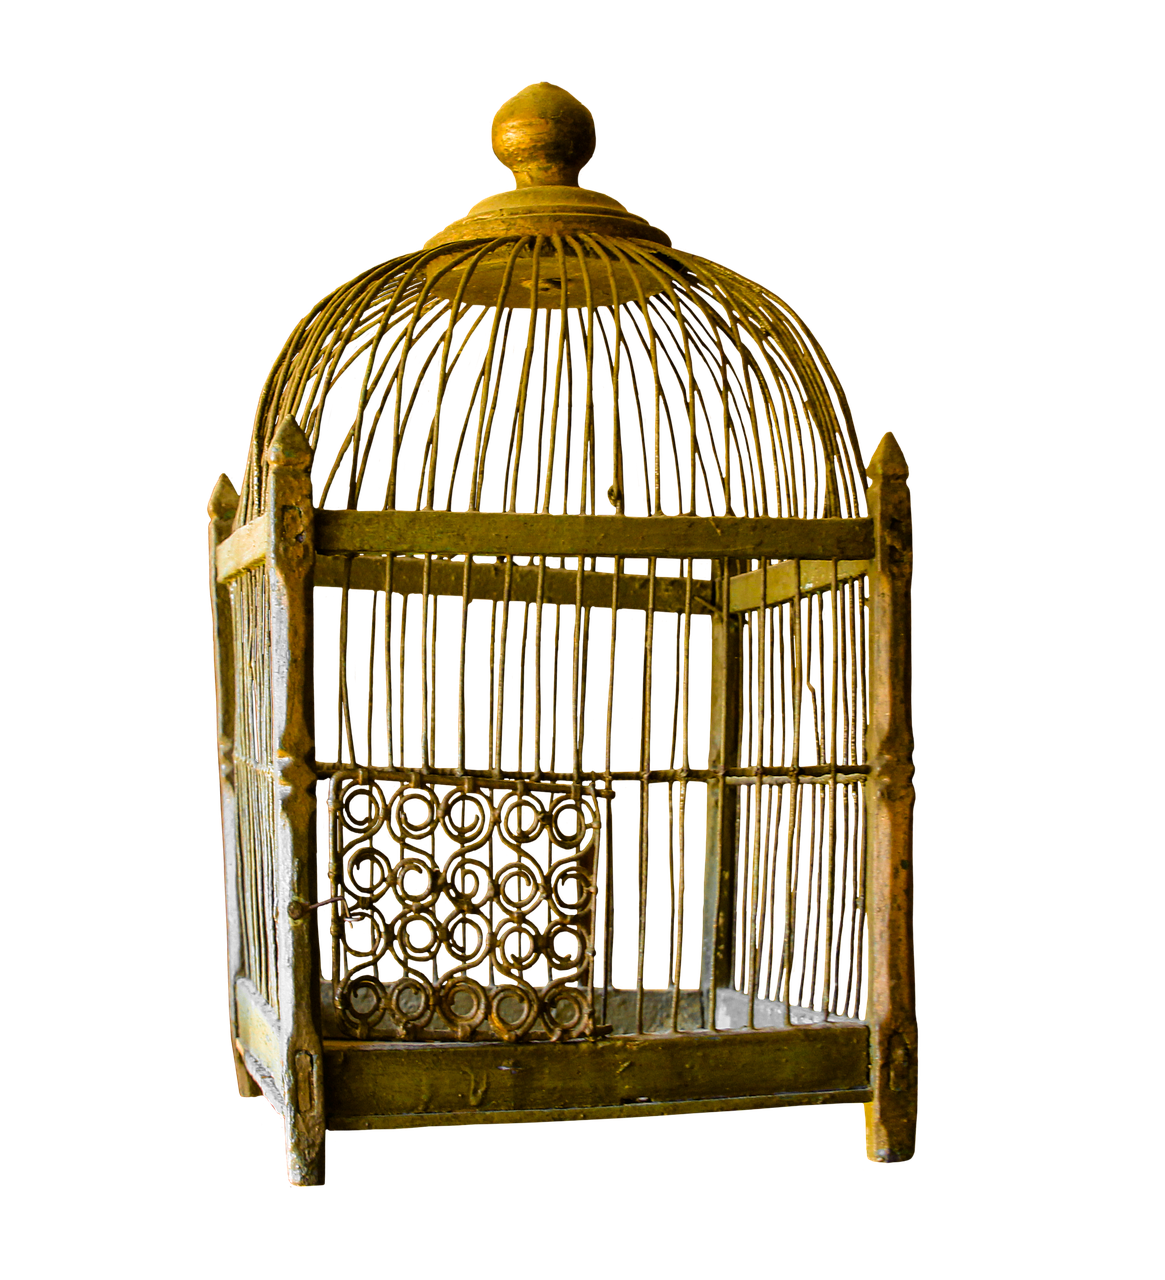 A golden cage can be comfortable - but still is a cage.